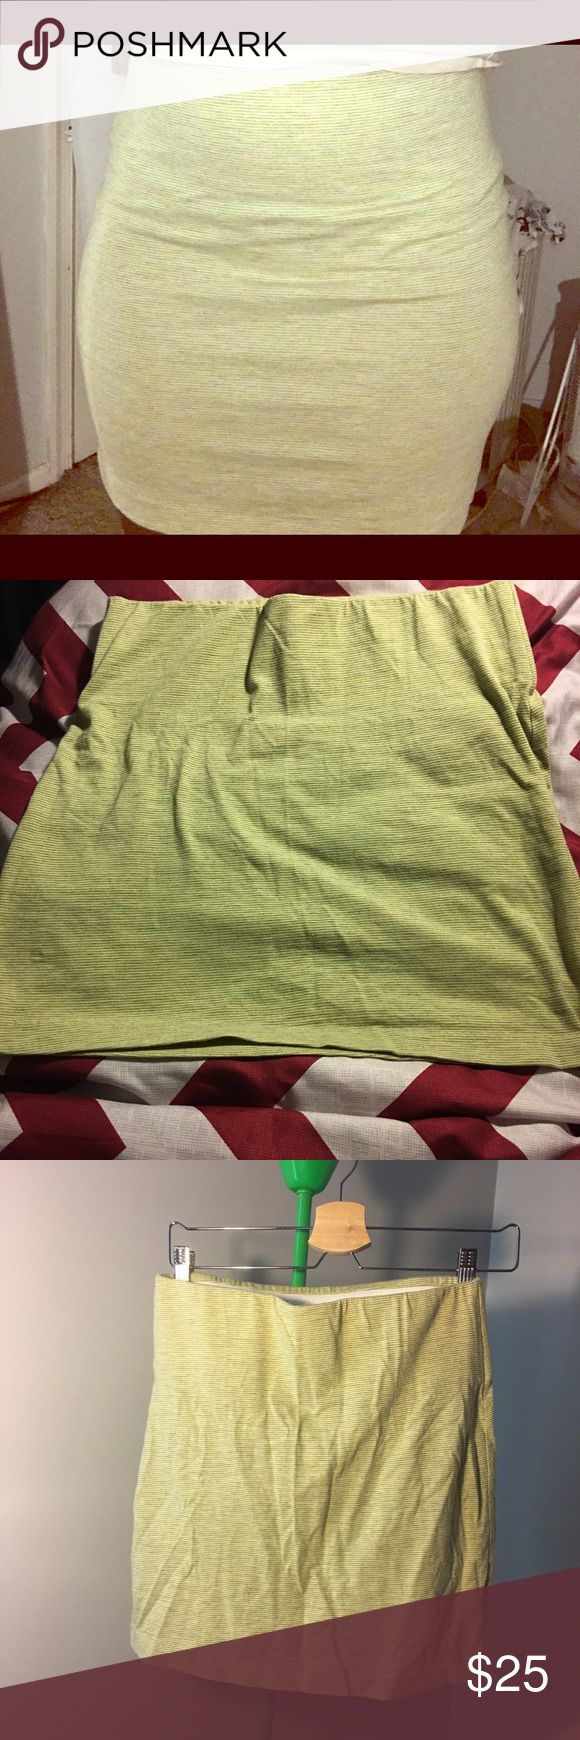 Mini pencil skirt Stretchy, mini pencil skirt with elastic waistband. It's been worn once. Perfect condition, just wrinkled. BCBGeneration Skirts Pencil